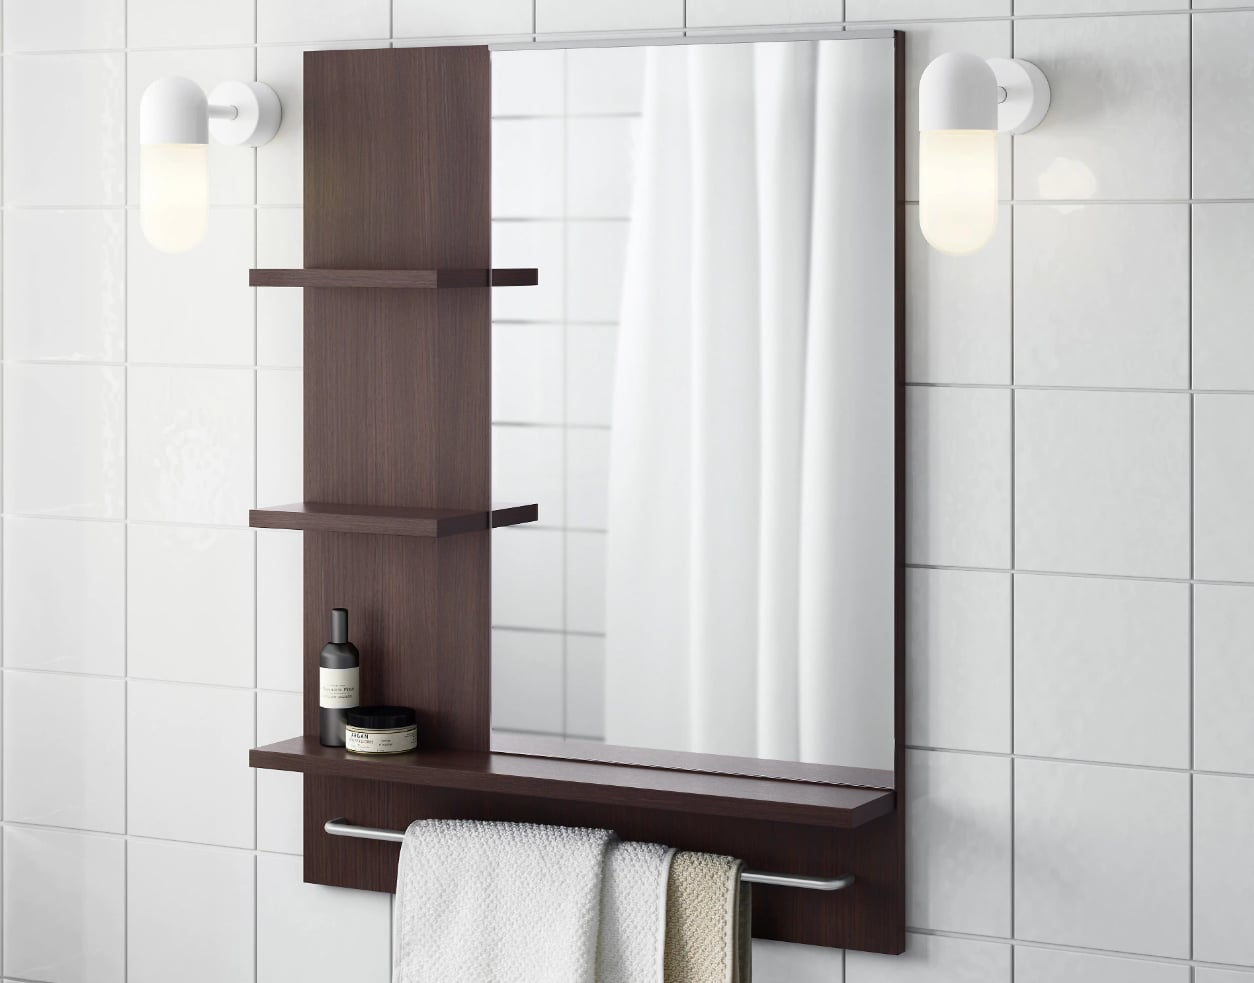 Lillangen Mirror Small Bathrooms Meet Big Storage Solutions 60 Ikea Products That Give You All The Space Need Popsugar Home Photo 18